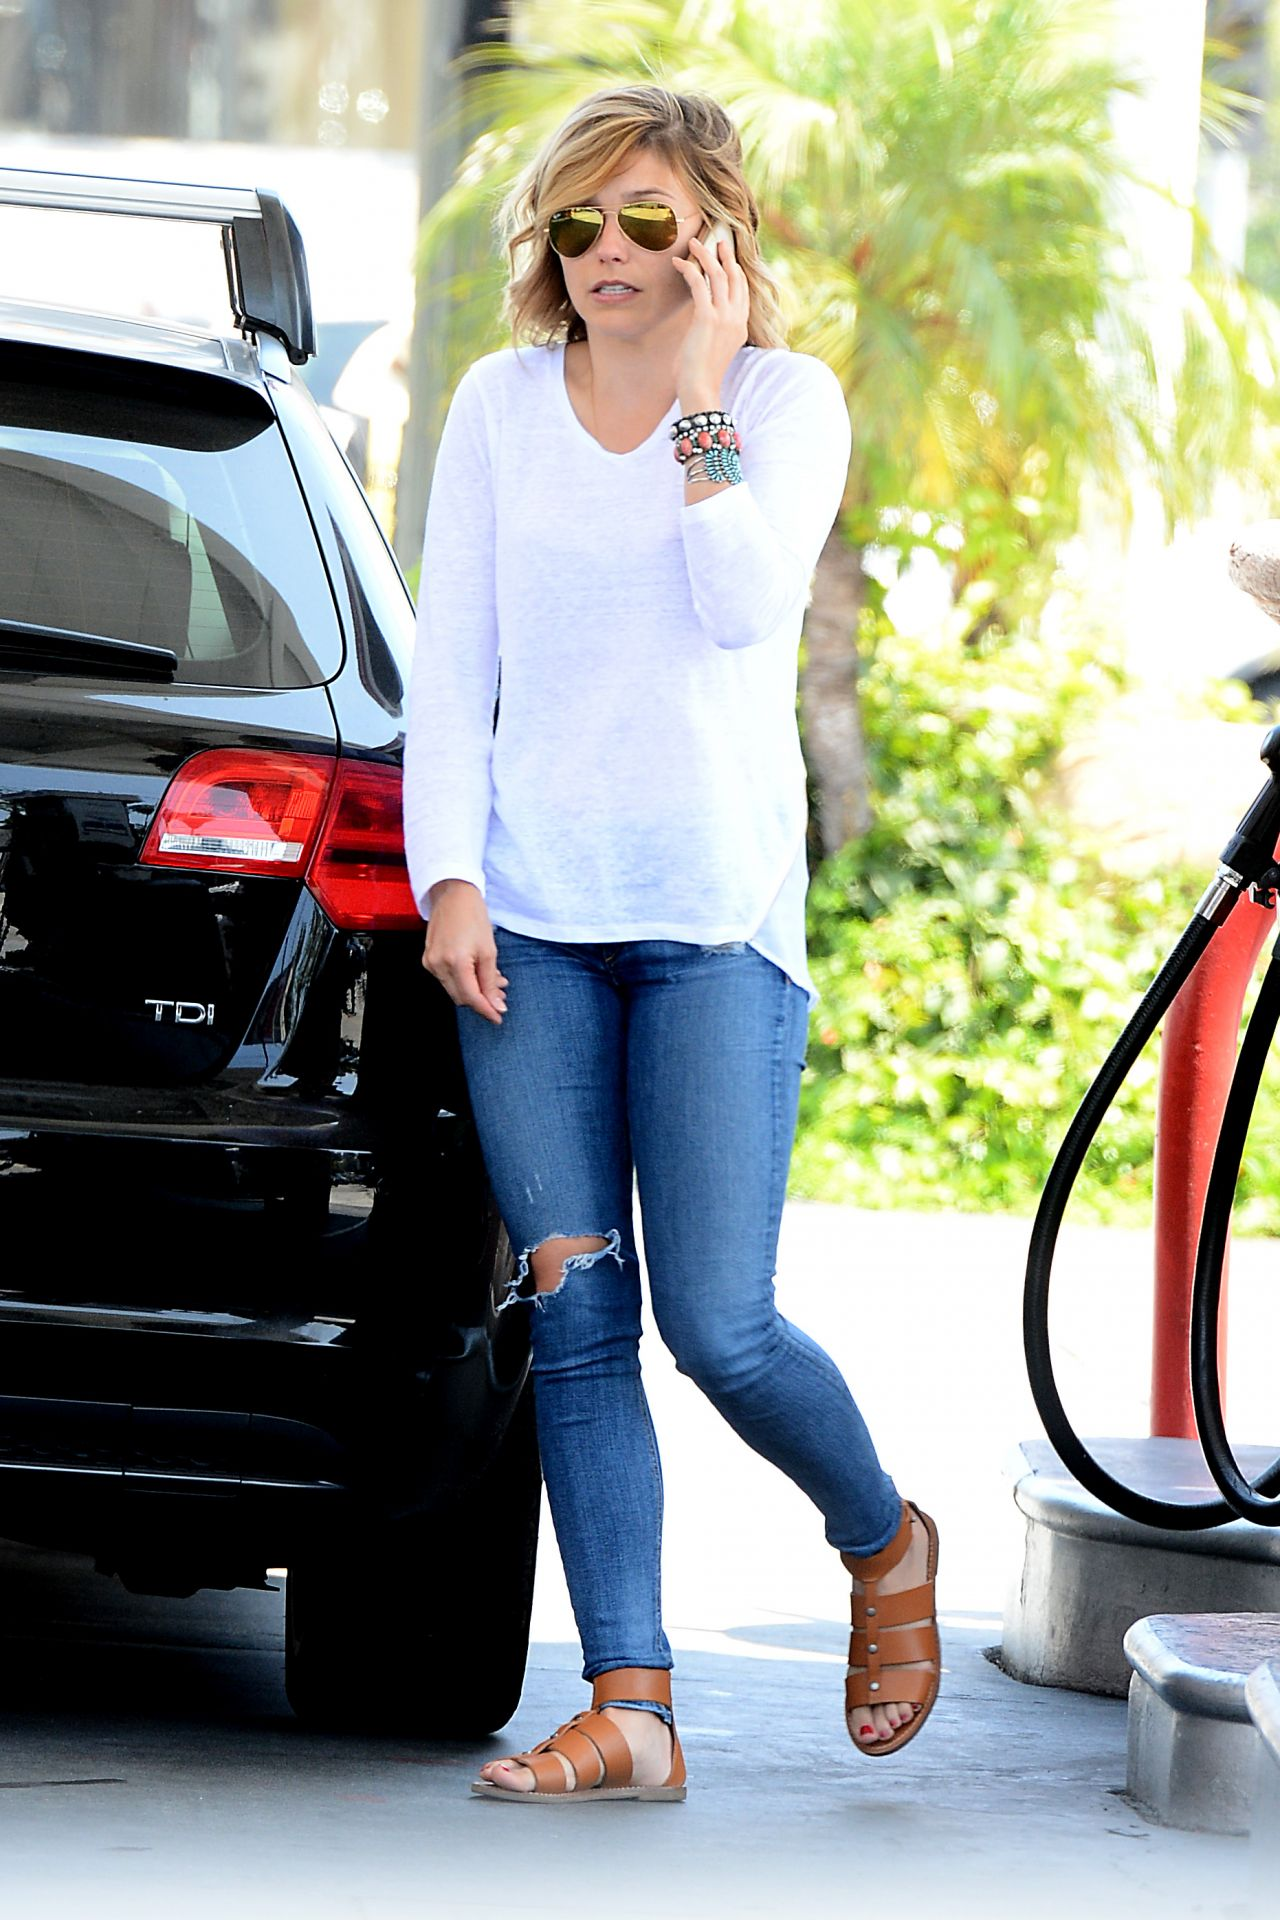 Sophia Bush in Ripped Jeans at a Gas Station in Westwood - June 2014